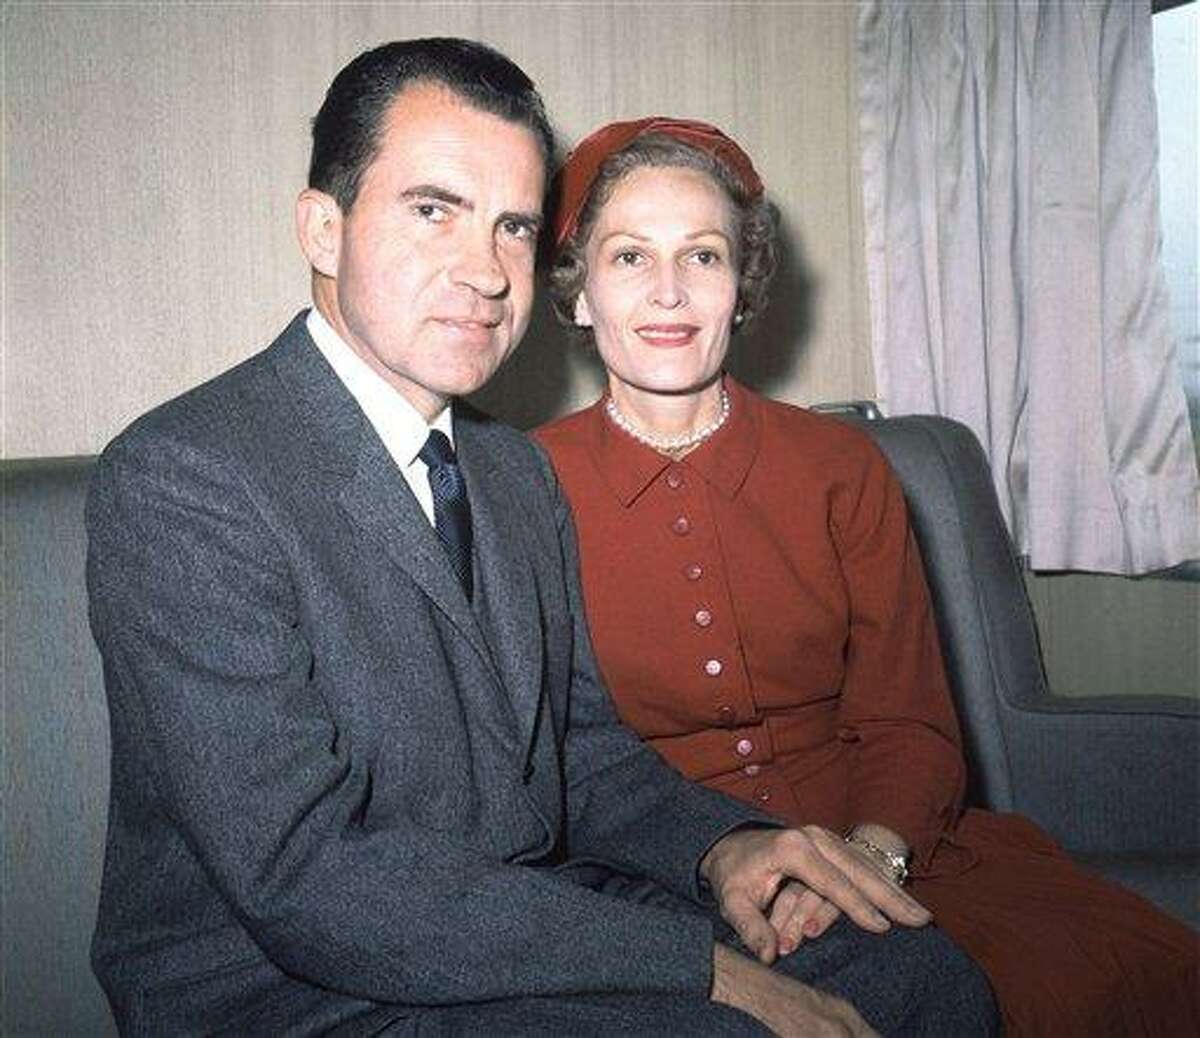 In this June 1960 file photo, former President Richard Nixon, left, and his wife Pat pose for photos while campaigning at Rockefeller Center in New York. Six love letters between the 37th president and his wife will go on display Friday as part of an exhibit at the Richard Nixon Presidential Library and Museum. The exhibit is intended to celebrate what would have been Pat Nixon's 100th birthday and is dedicated to her life and accomplishments. Associated Press